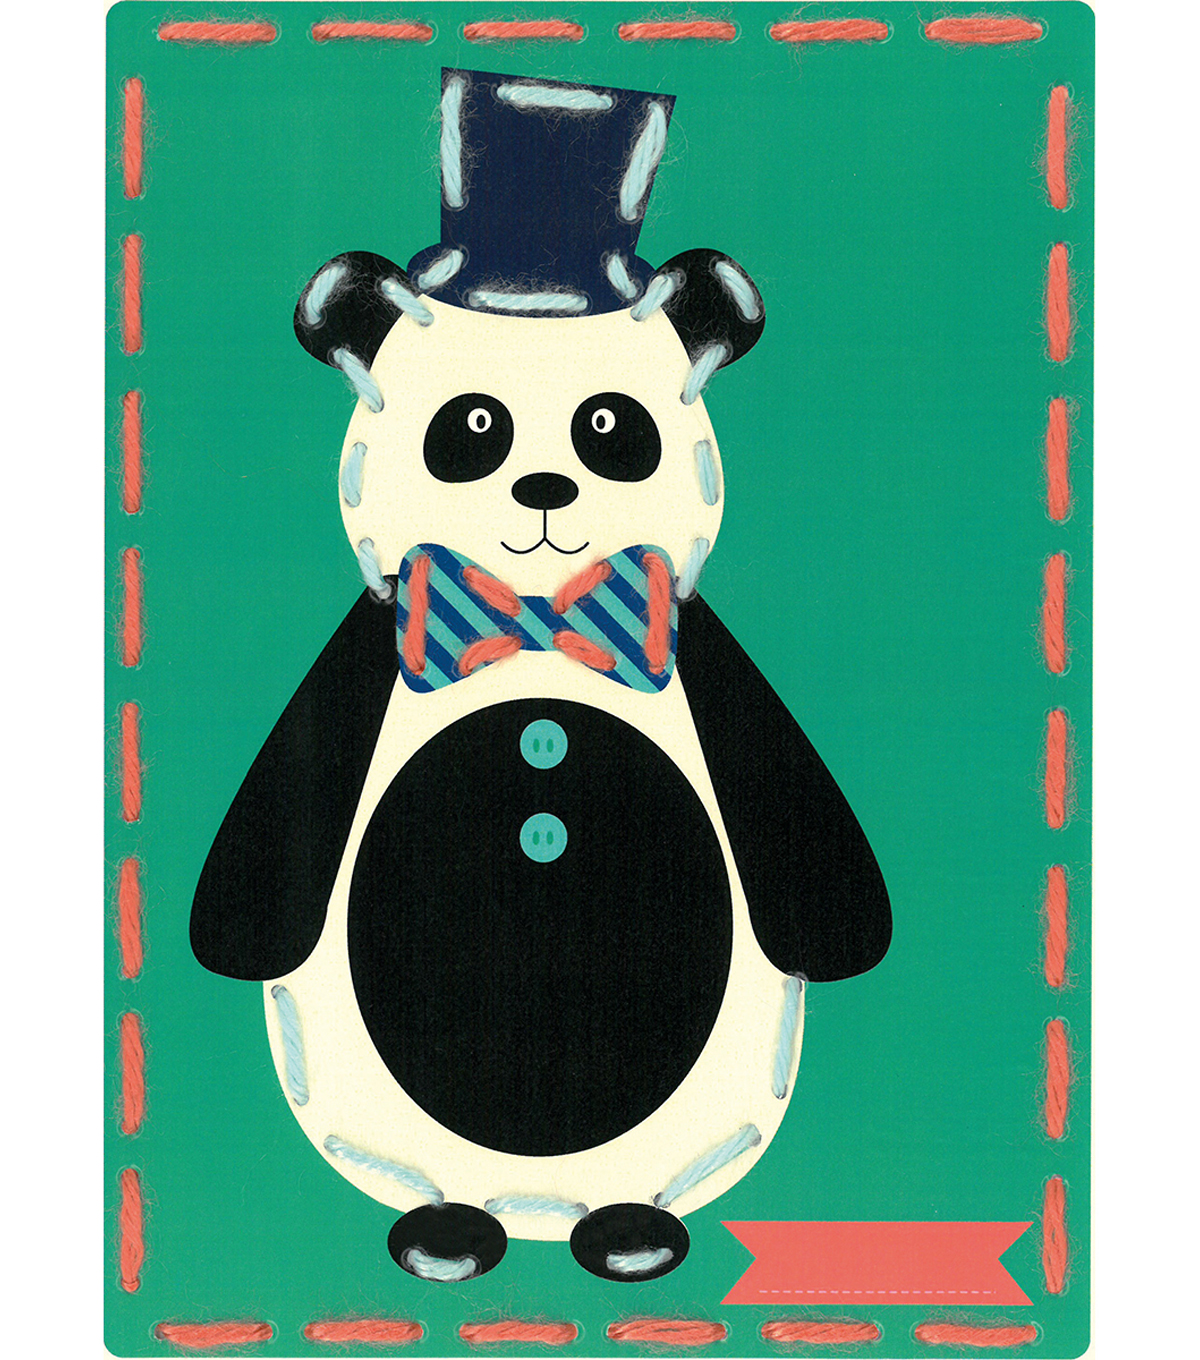 Vervaco I Stitch! Kits 4 Kids Embroidery Cards Kit-Circus Panda